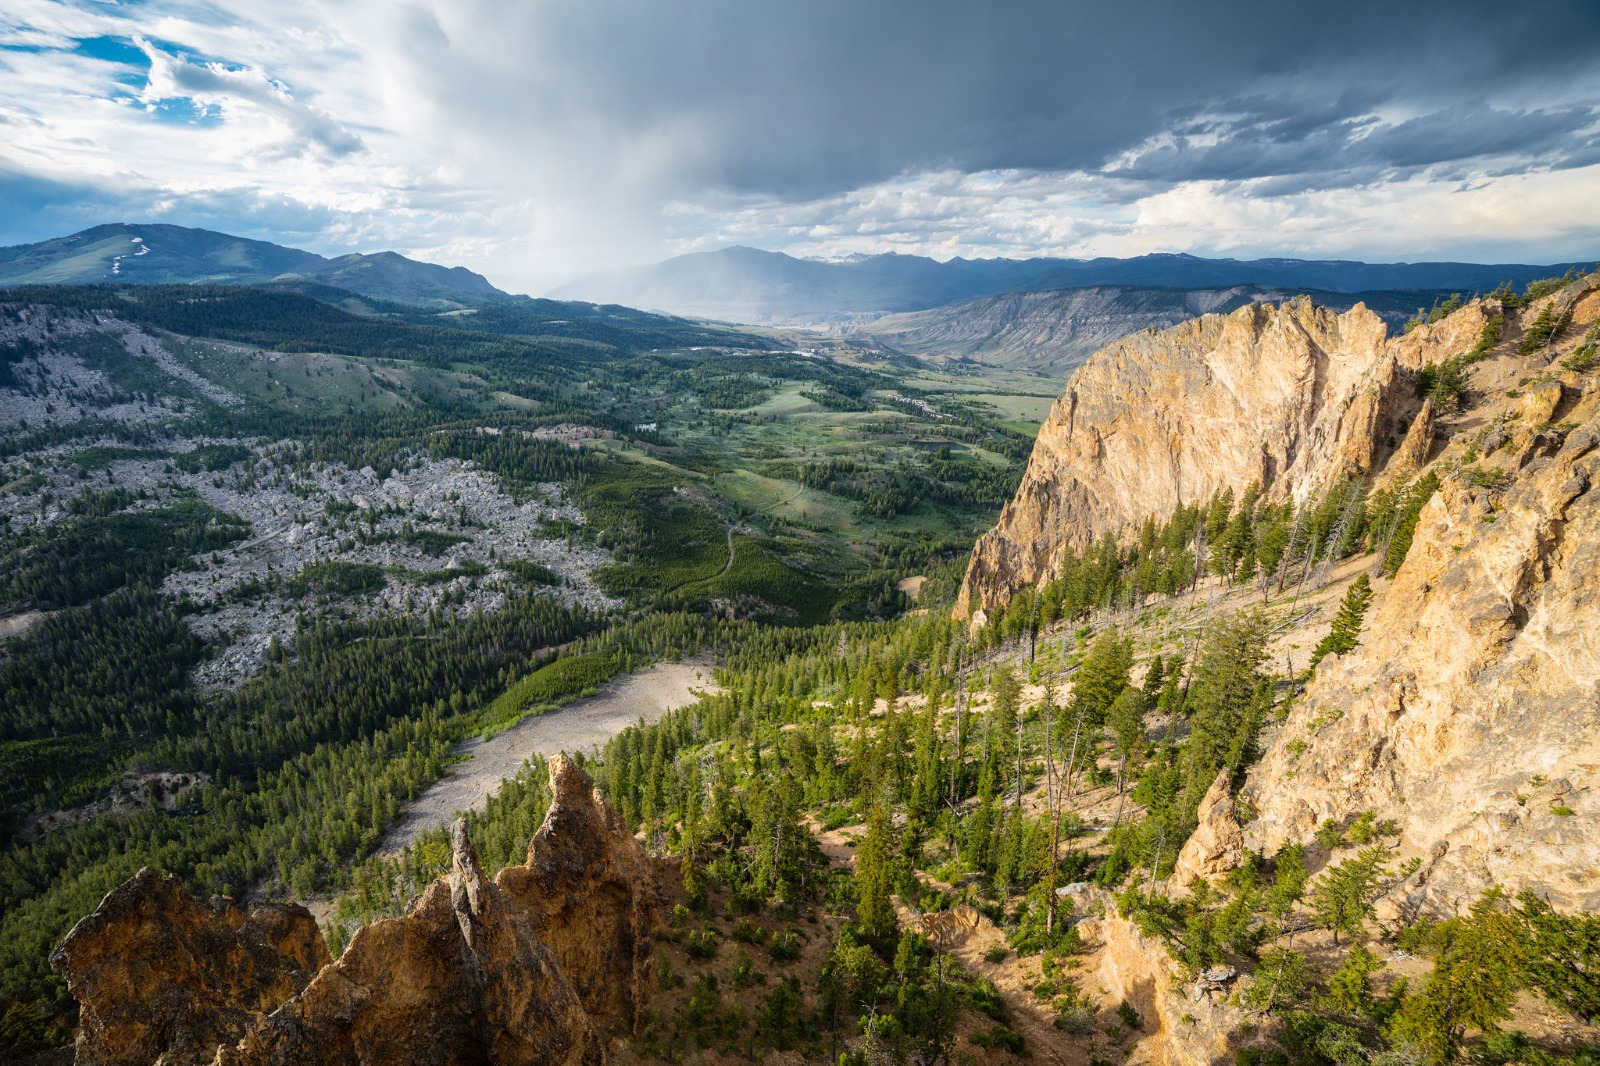 Just a small example of the expansive lands Wenk and colleagues oversee and protect.  Views from the Bunsen Peak Trail, Yellowstone National Park.  NPS photo / Jacob W. Frank